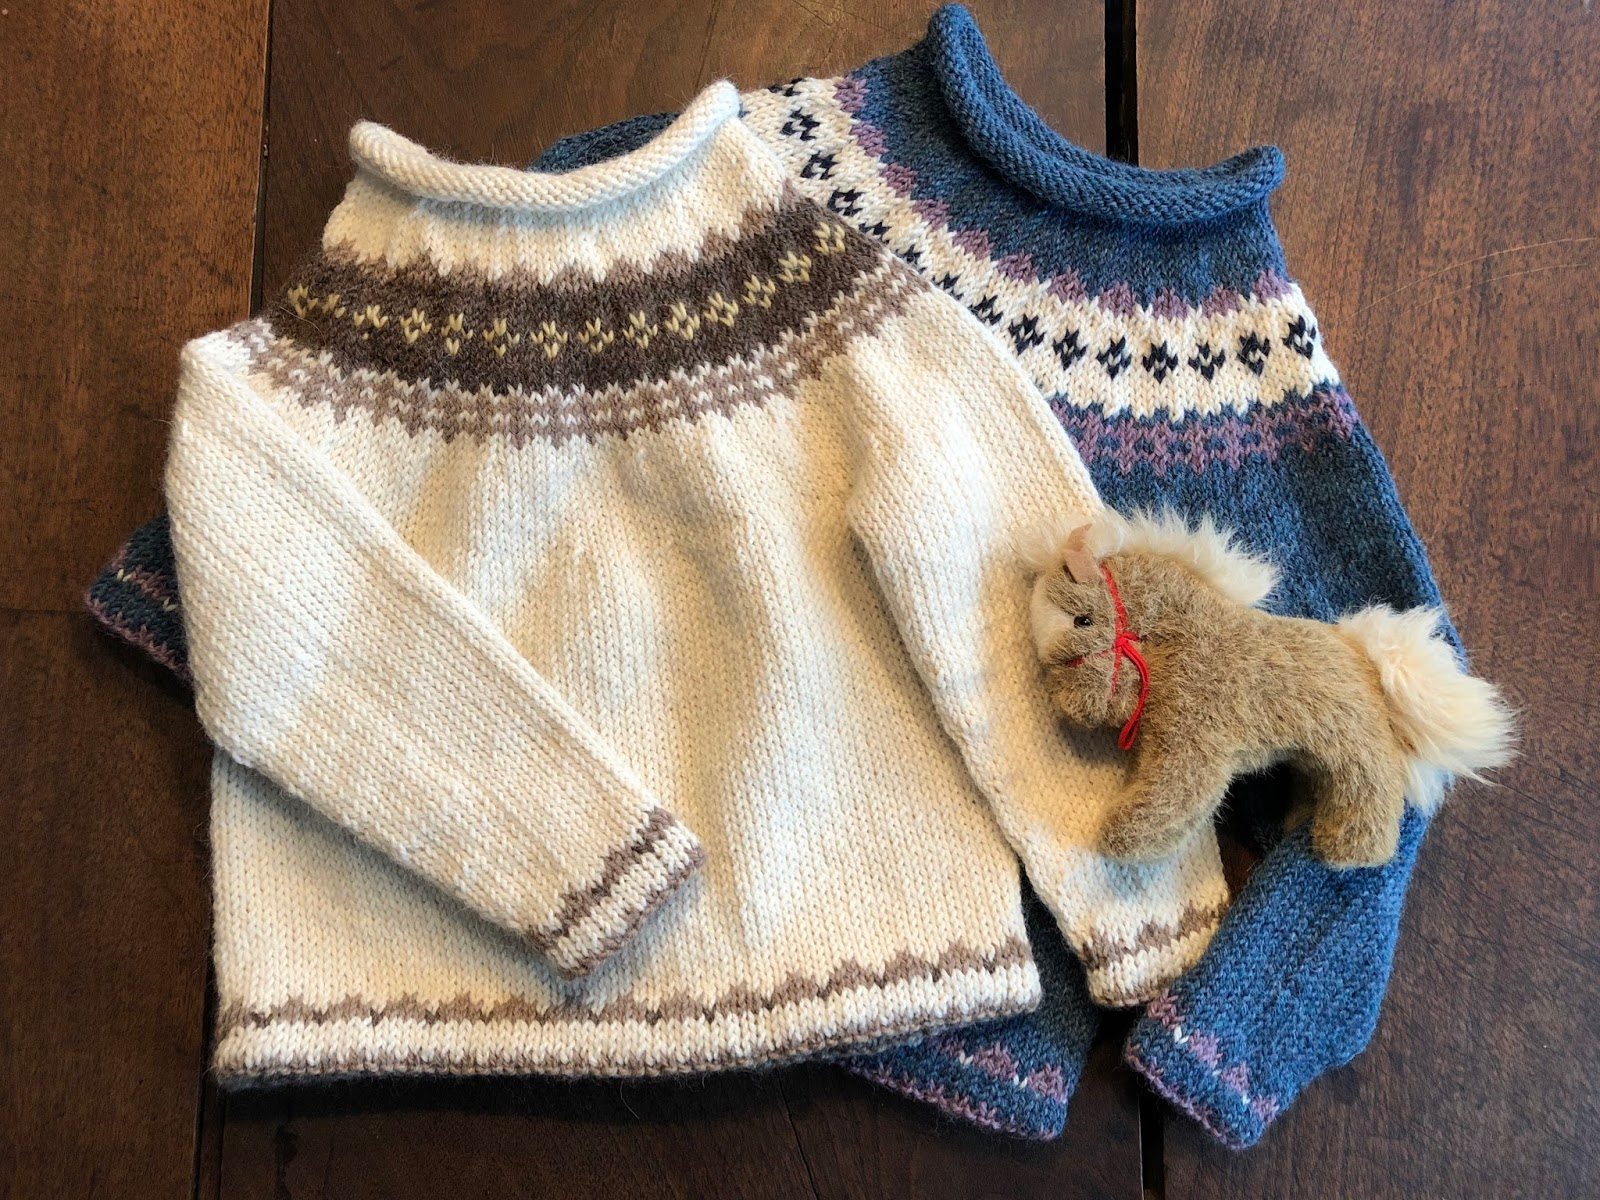 knitnscribble.com: Knitting Patterns and Designs